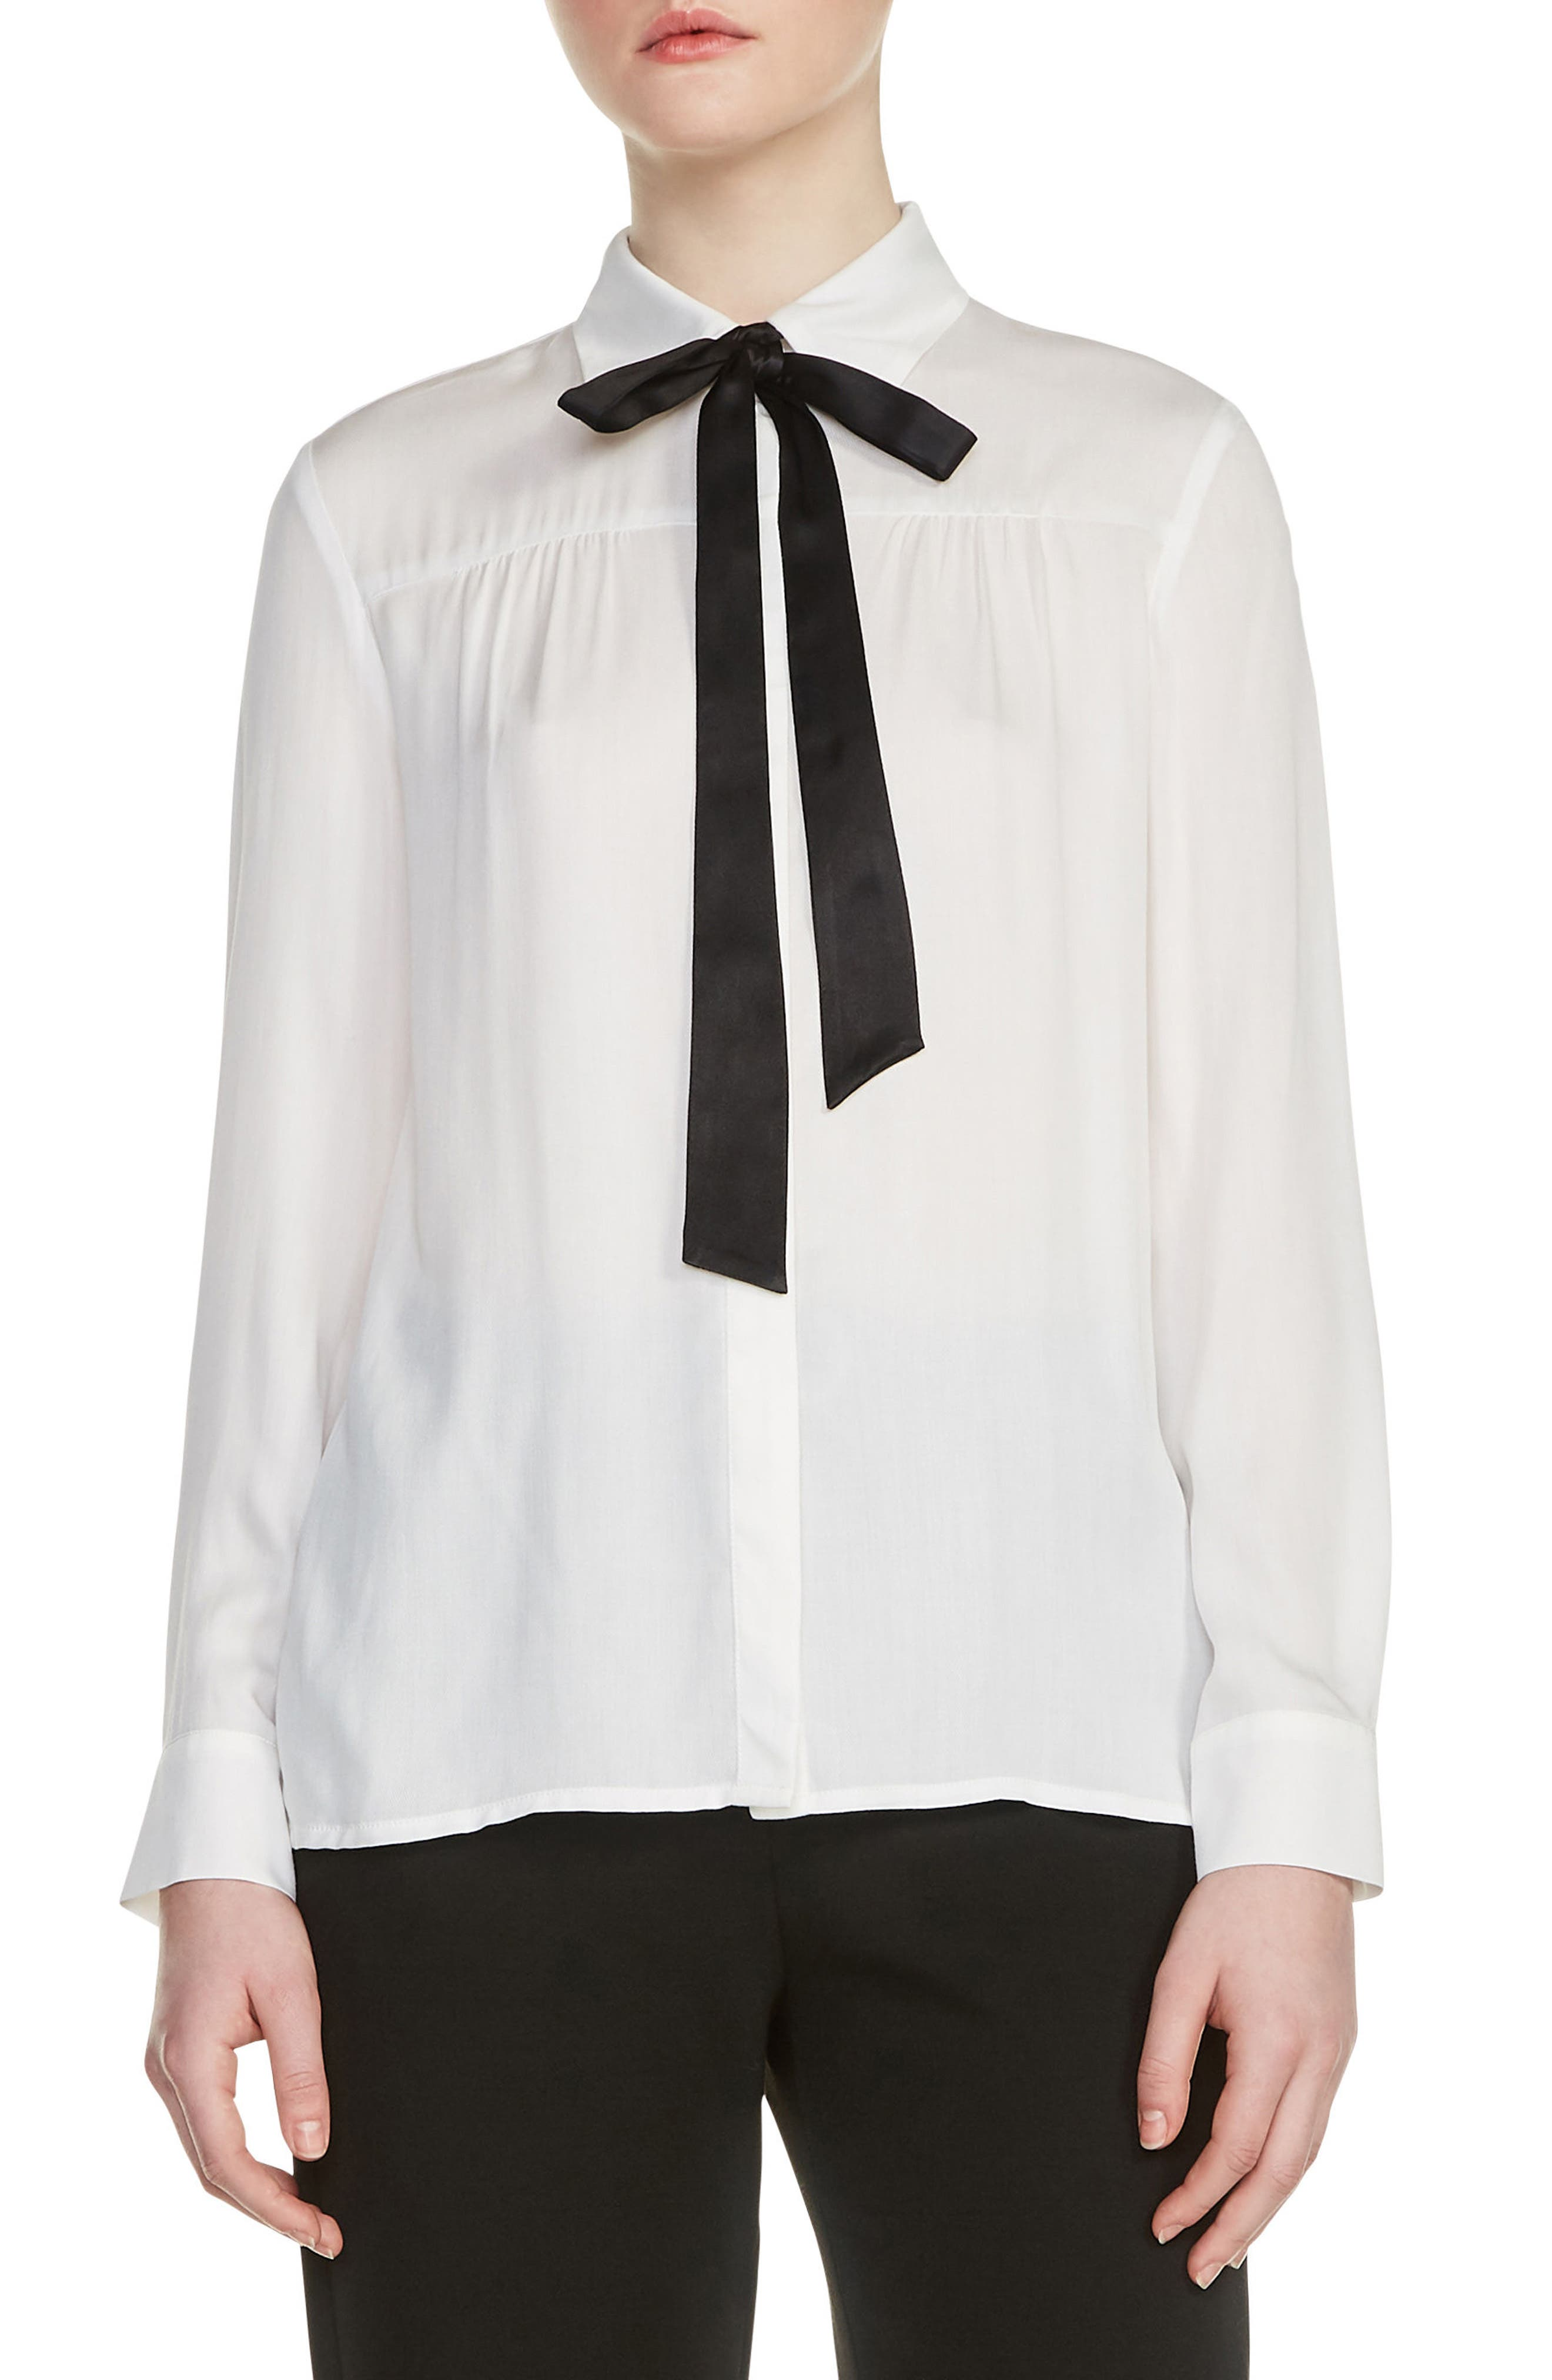 Caryota Tie Neck Blouse,                         Main,                         color,